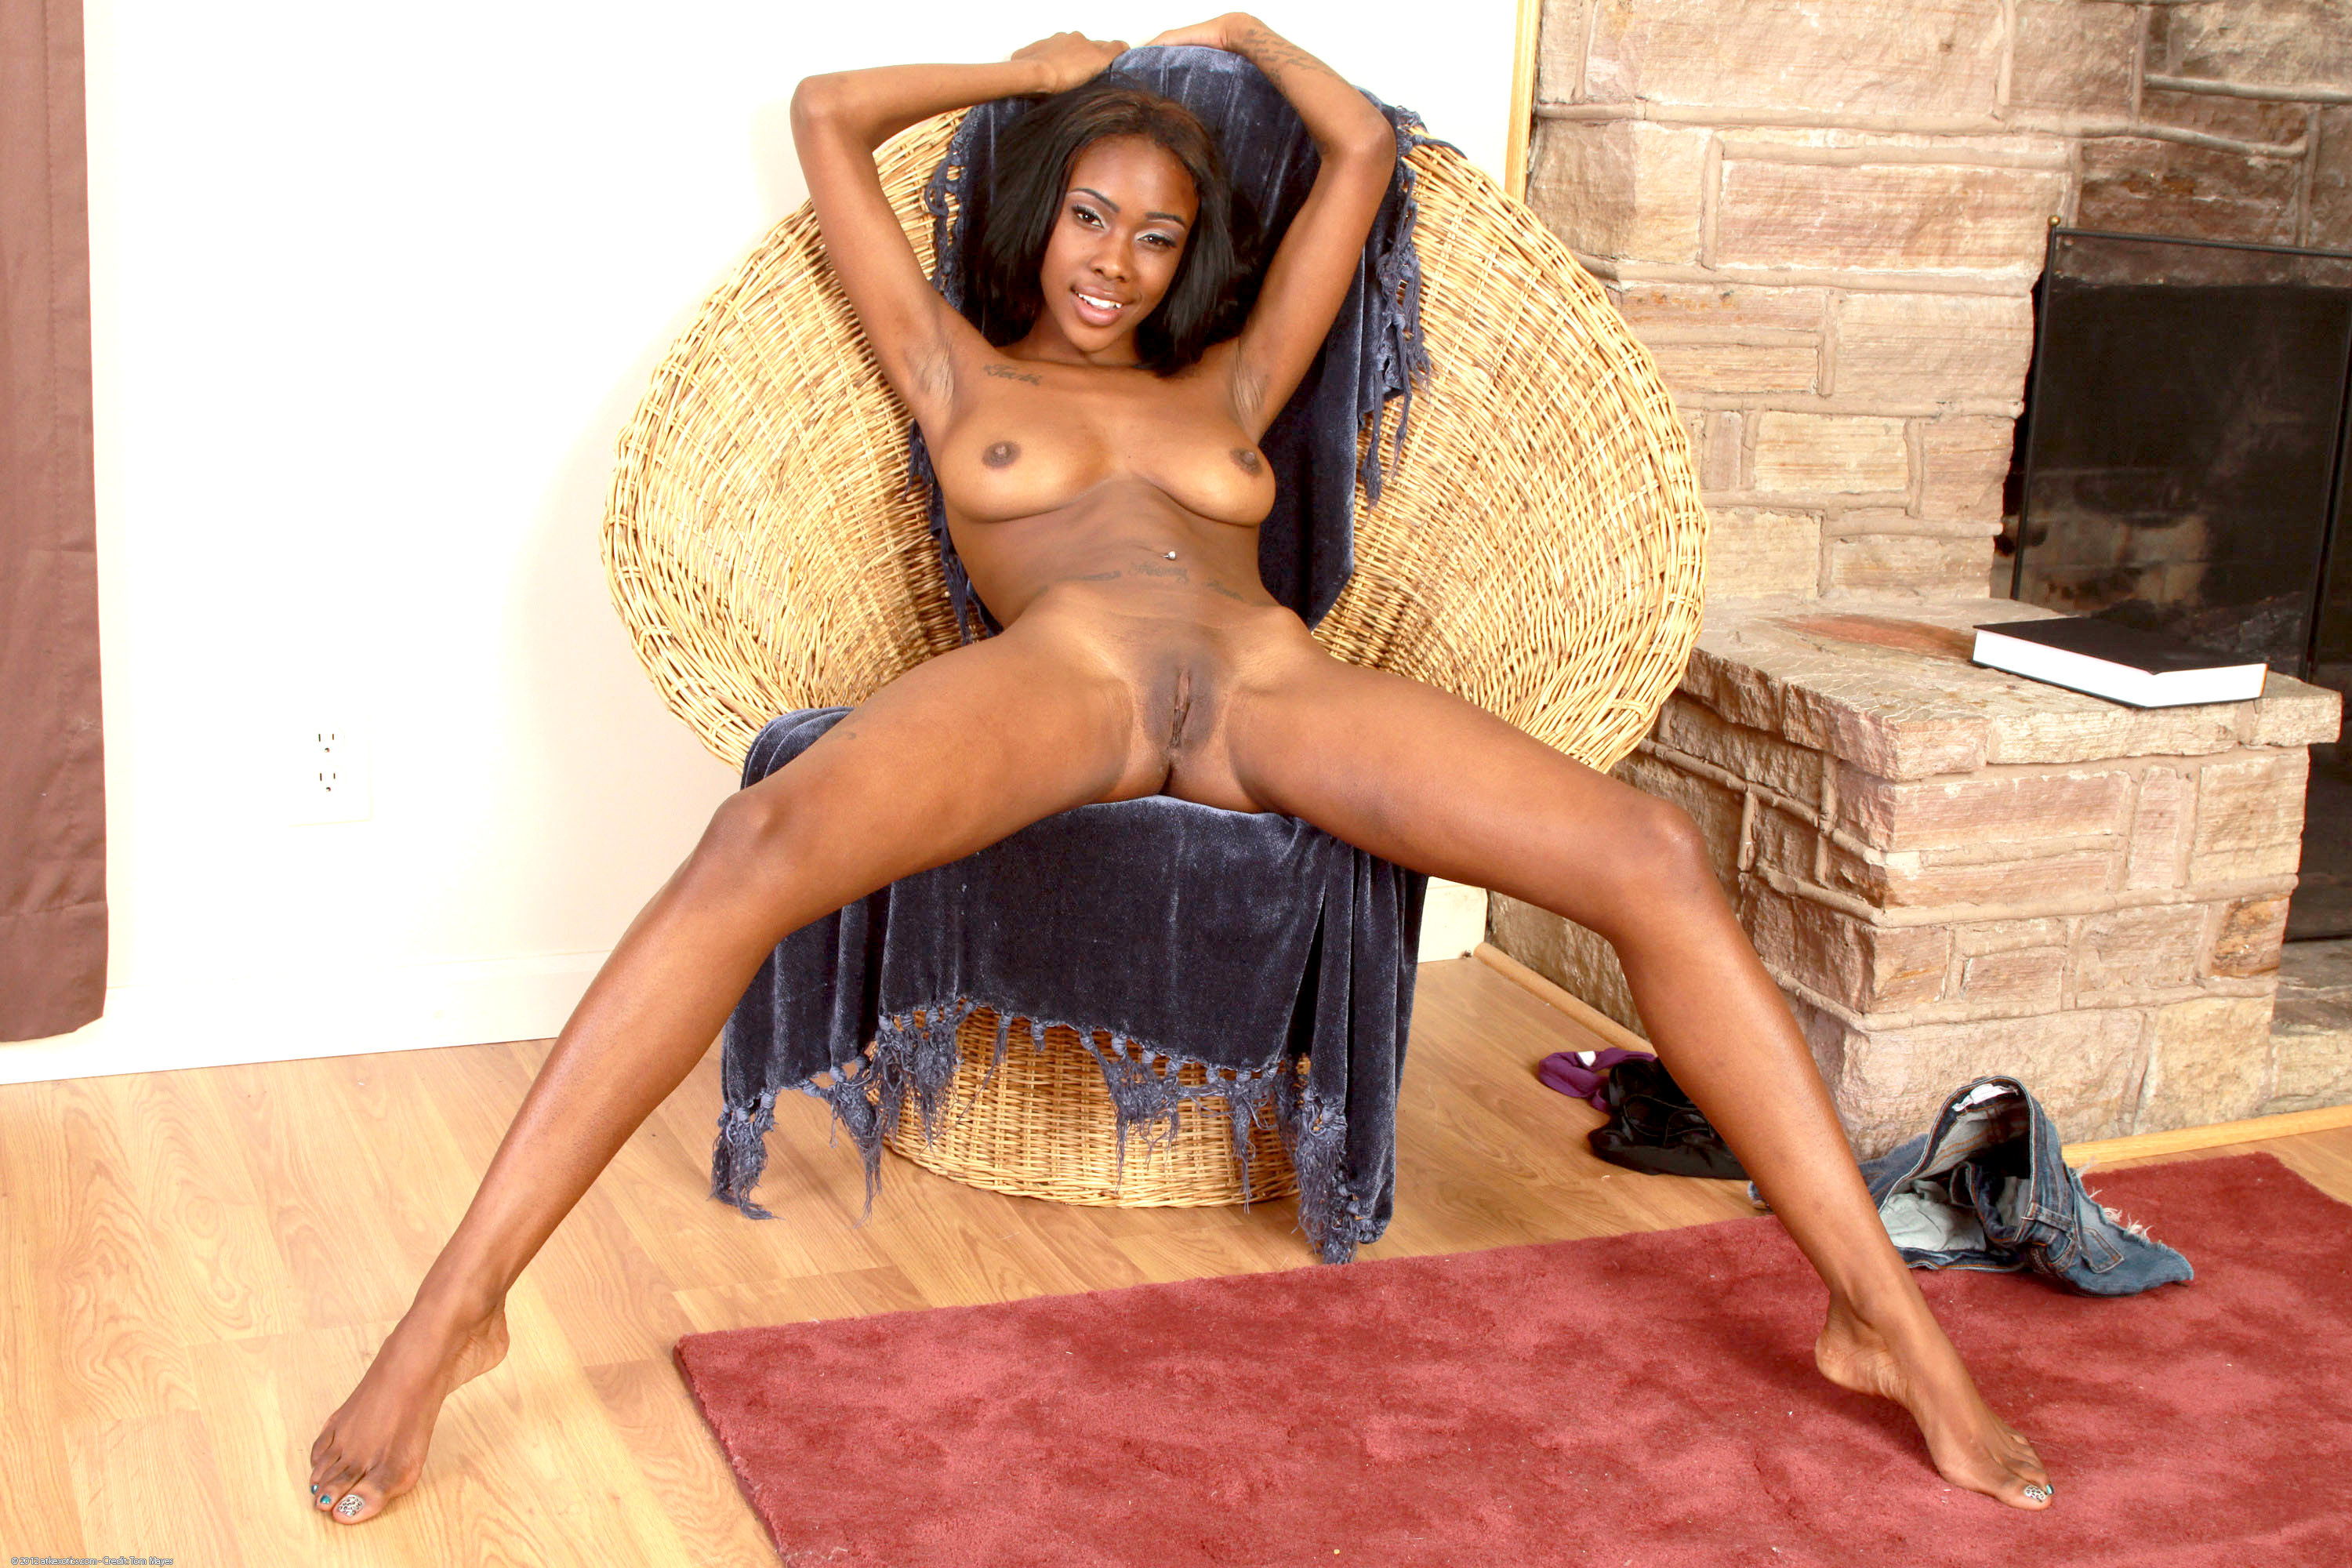 ebony goth nudes - Wallpaper nicole dymond, ebony, brunette, nude, naked, girls, sexy,  amateur, model, ebony gold desktop wallpaper - XXX walls - ID: 68841 -  ftopx.com